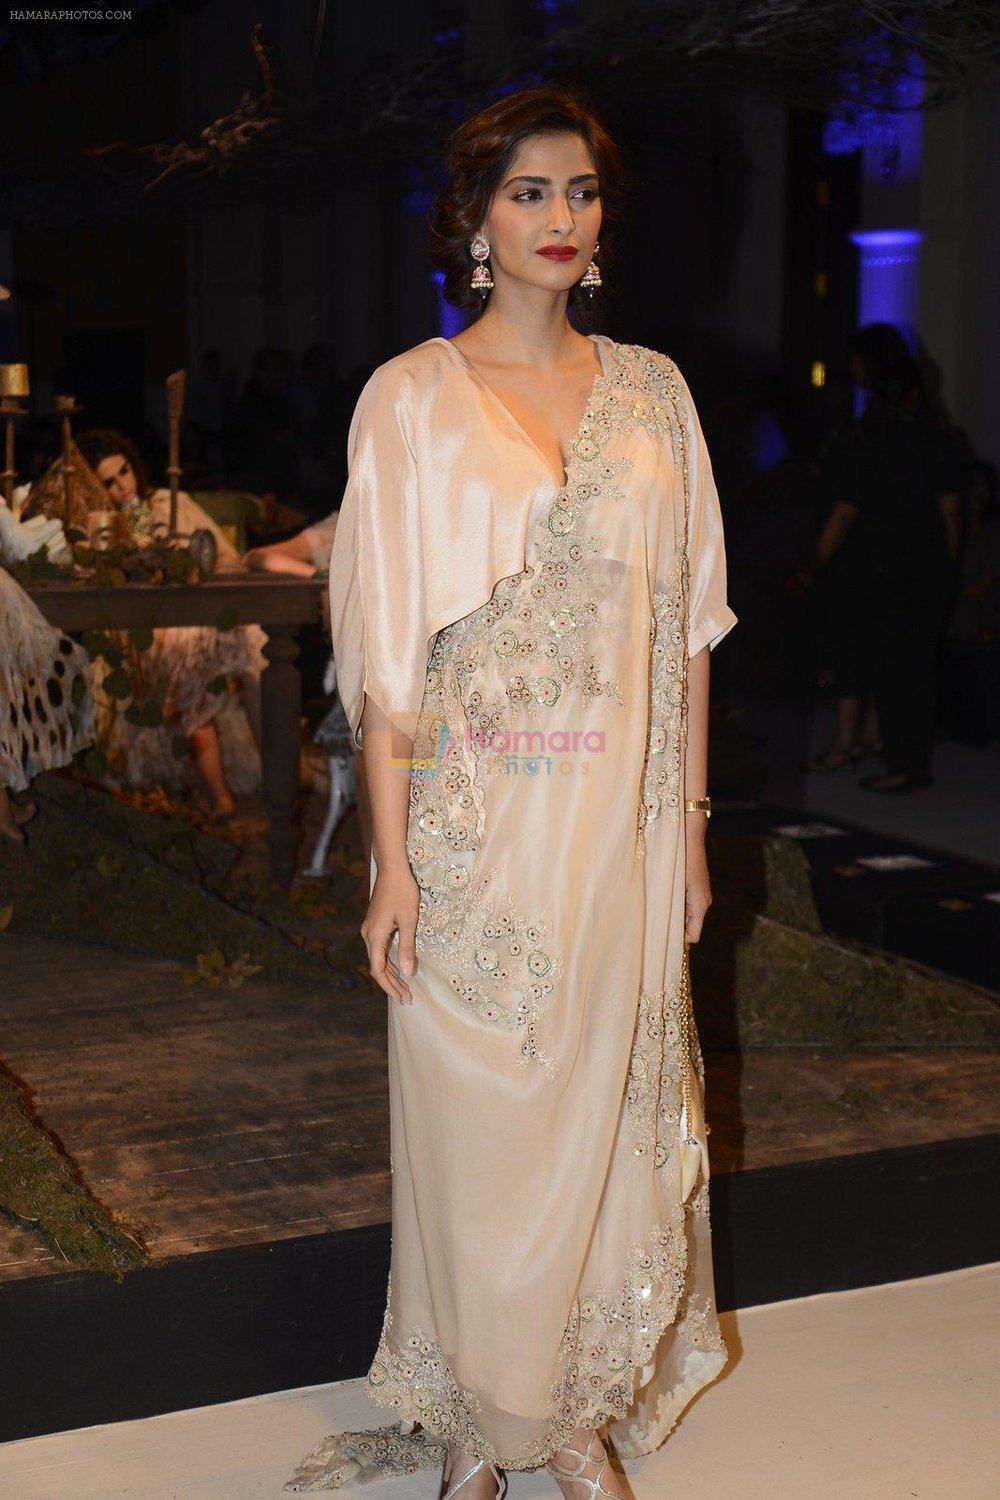 Sonam Kapoor during Anamika Khanna showcase When Time Stood Still at the FDCI India Couture Week 2016 on 22 July 2016 shown to user